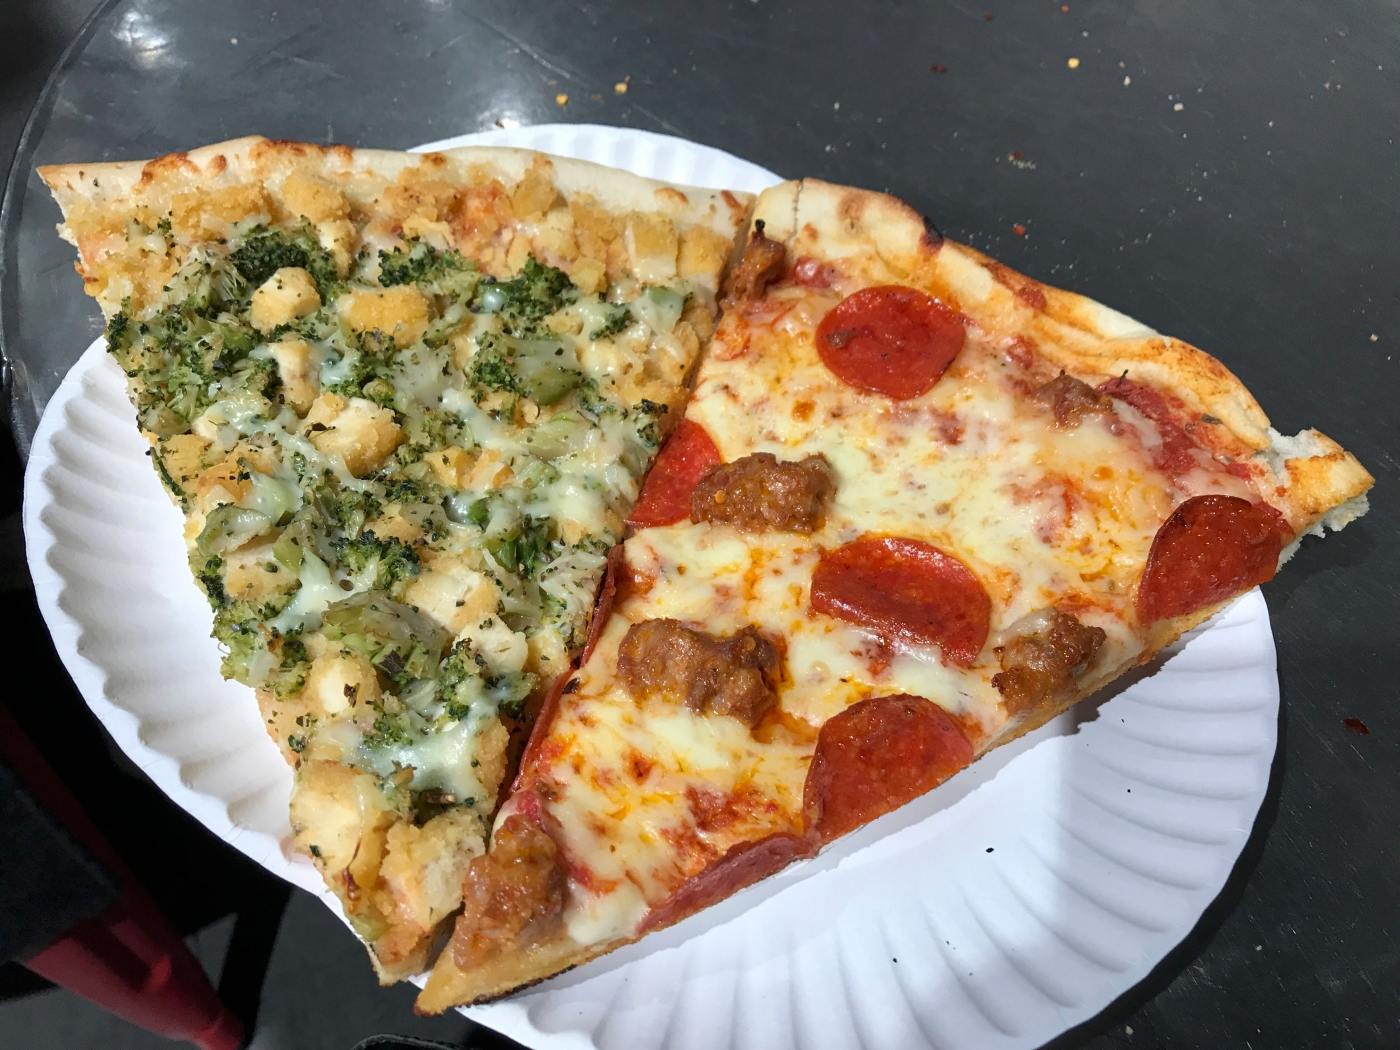 Slice Slice Baby - A Slice of Broccoli and Chicken Sits Beside a Slice of Pepperoni and Sausage at 2 Bros. Pizza in New York City, New York. Photo Courtesy of FoodWaterShoes.